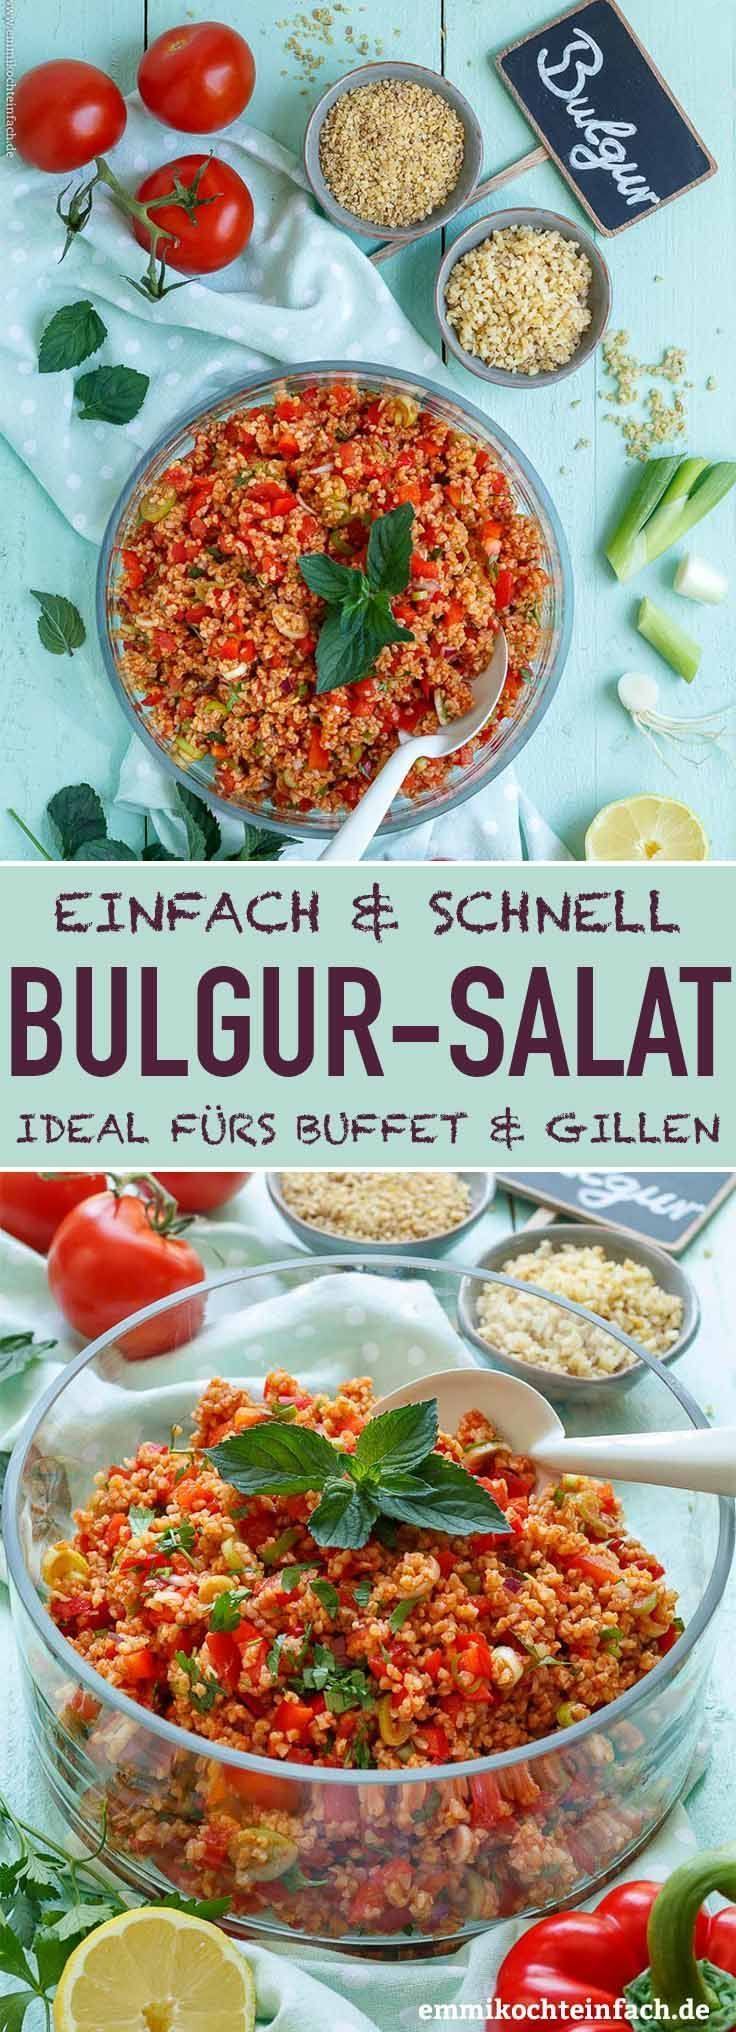 Fast and easy bulgur salad  easy to cook  Fast and easy bulgur salad  A great summer salad made in just 20 minutes Whether as a buffet or g